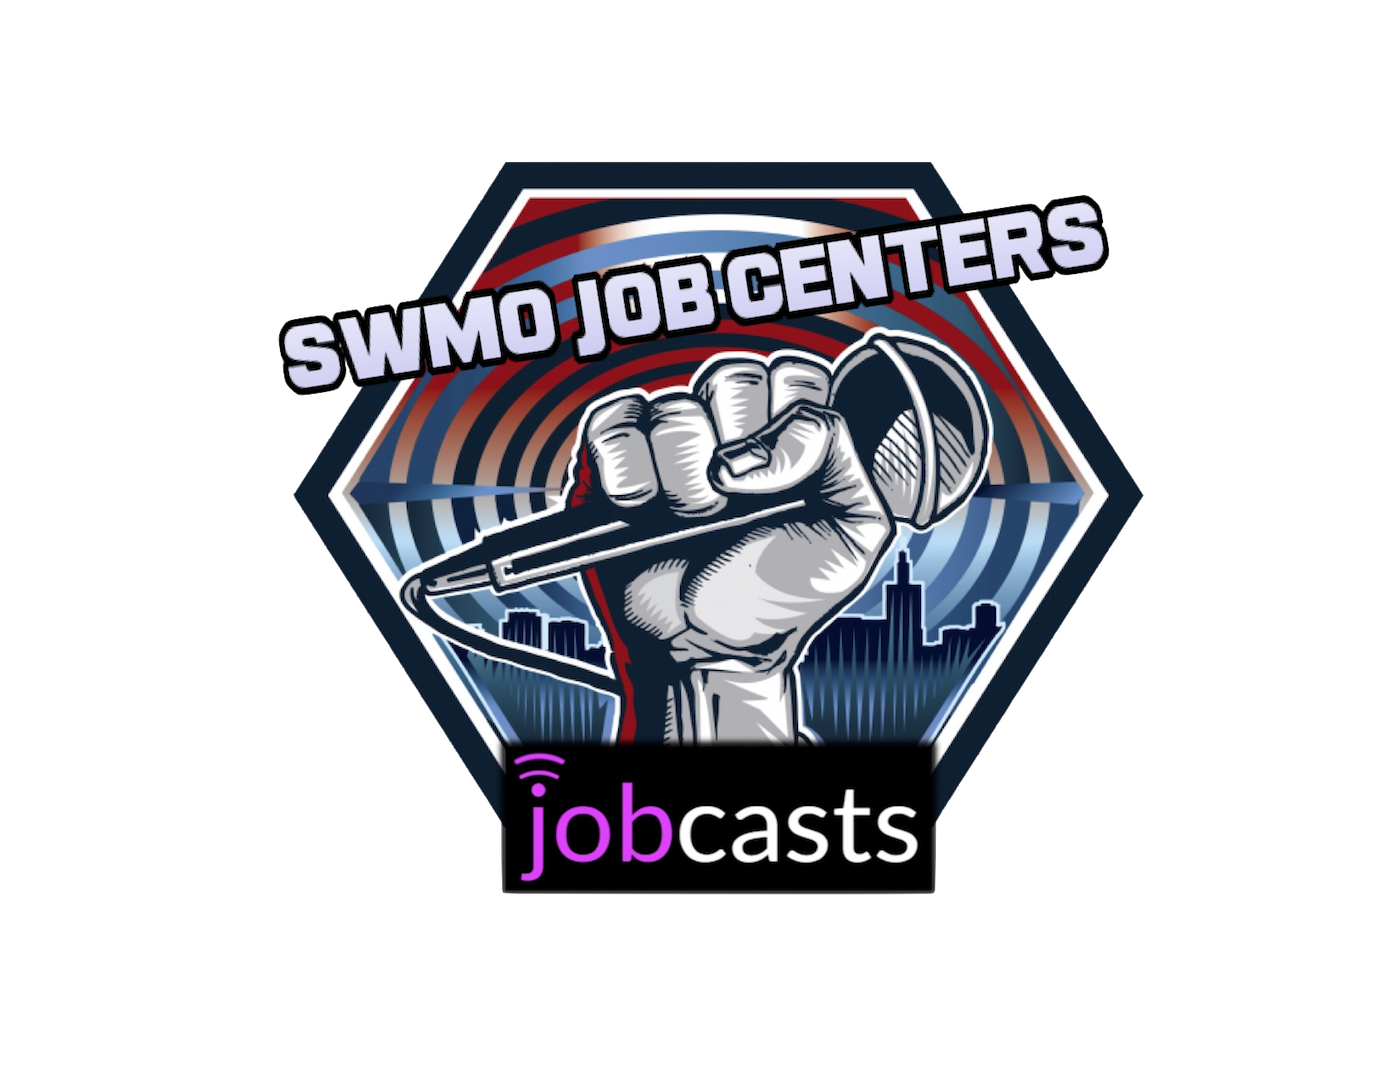 SWMO Jobs podcast - Opportunities for week of Nov 5th, 2018